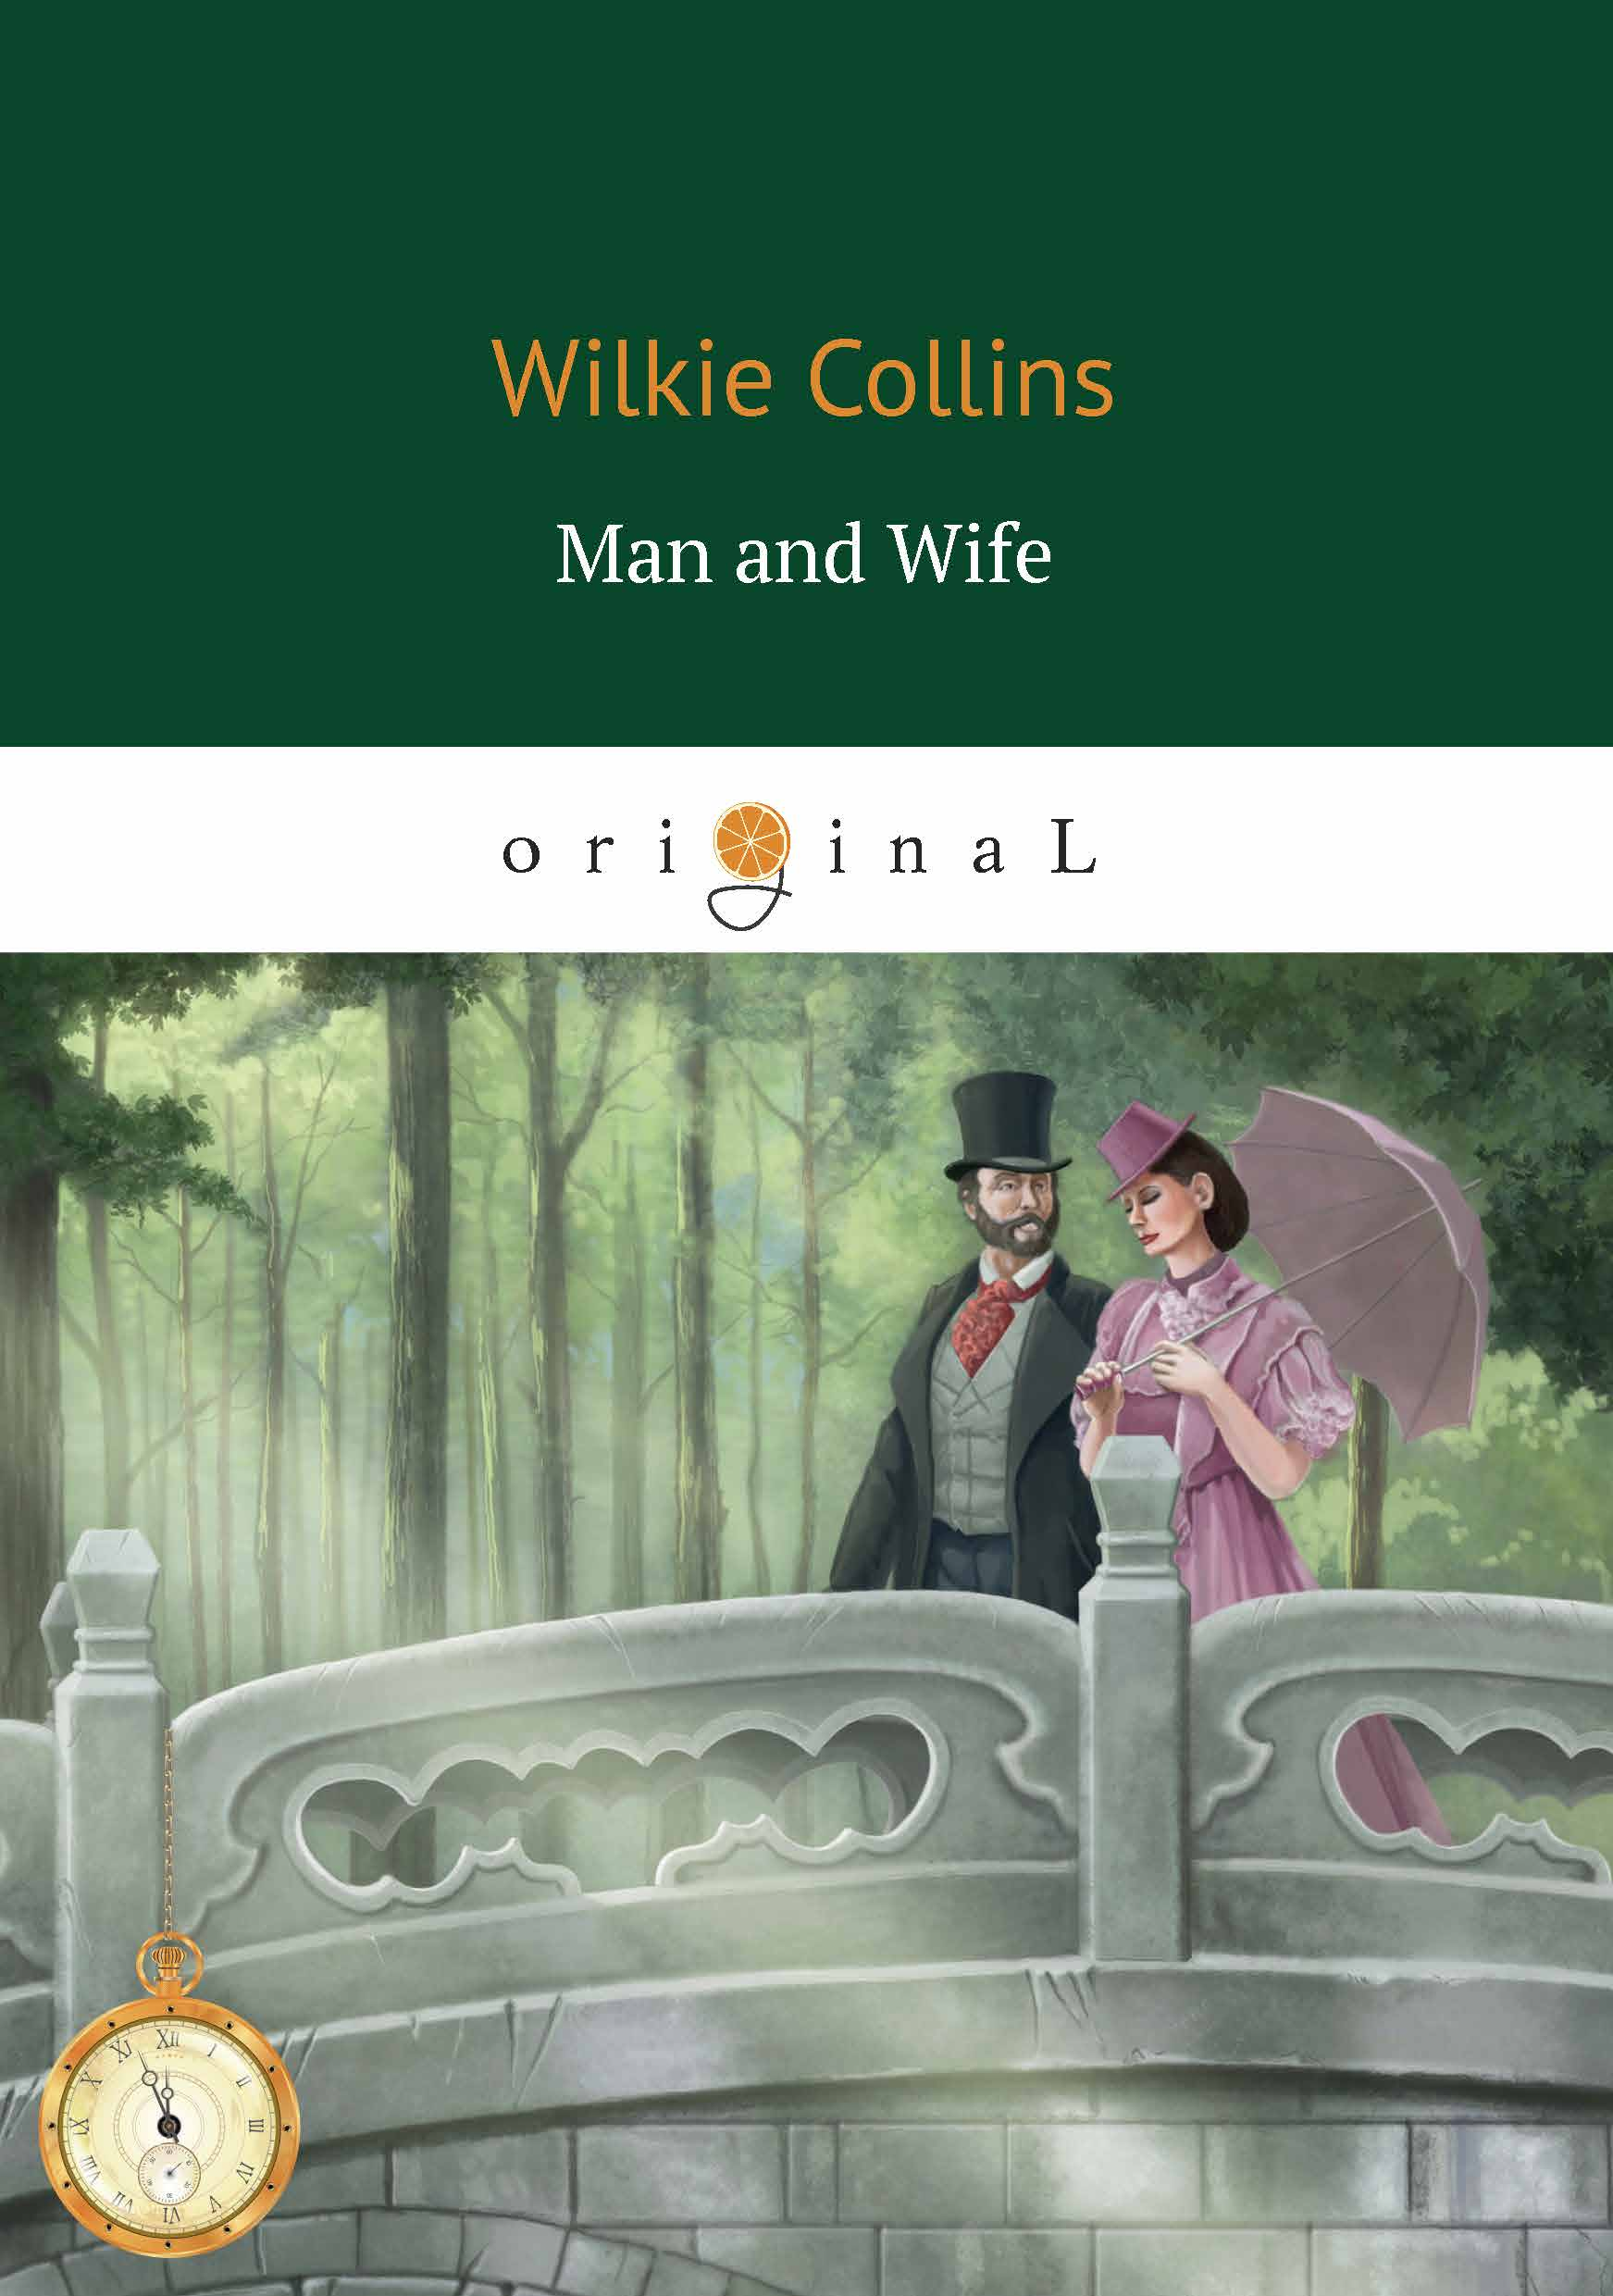 Wilkie Collins Man and Wife classified saskatoon